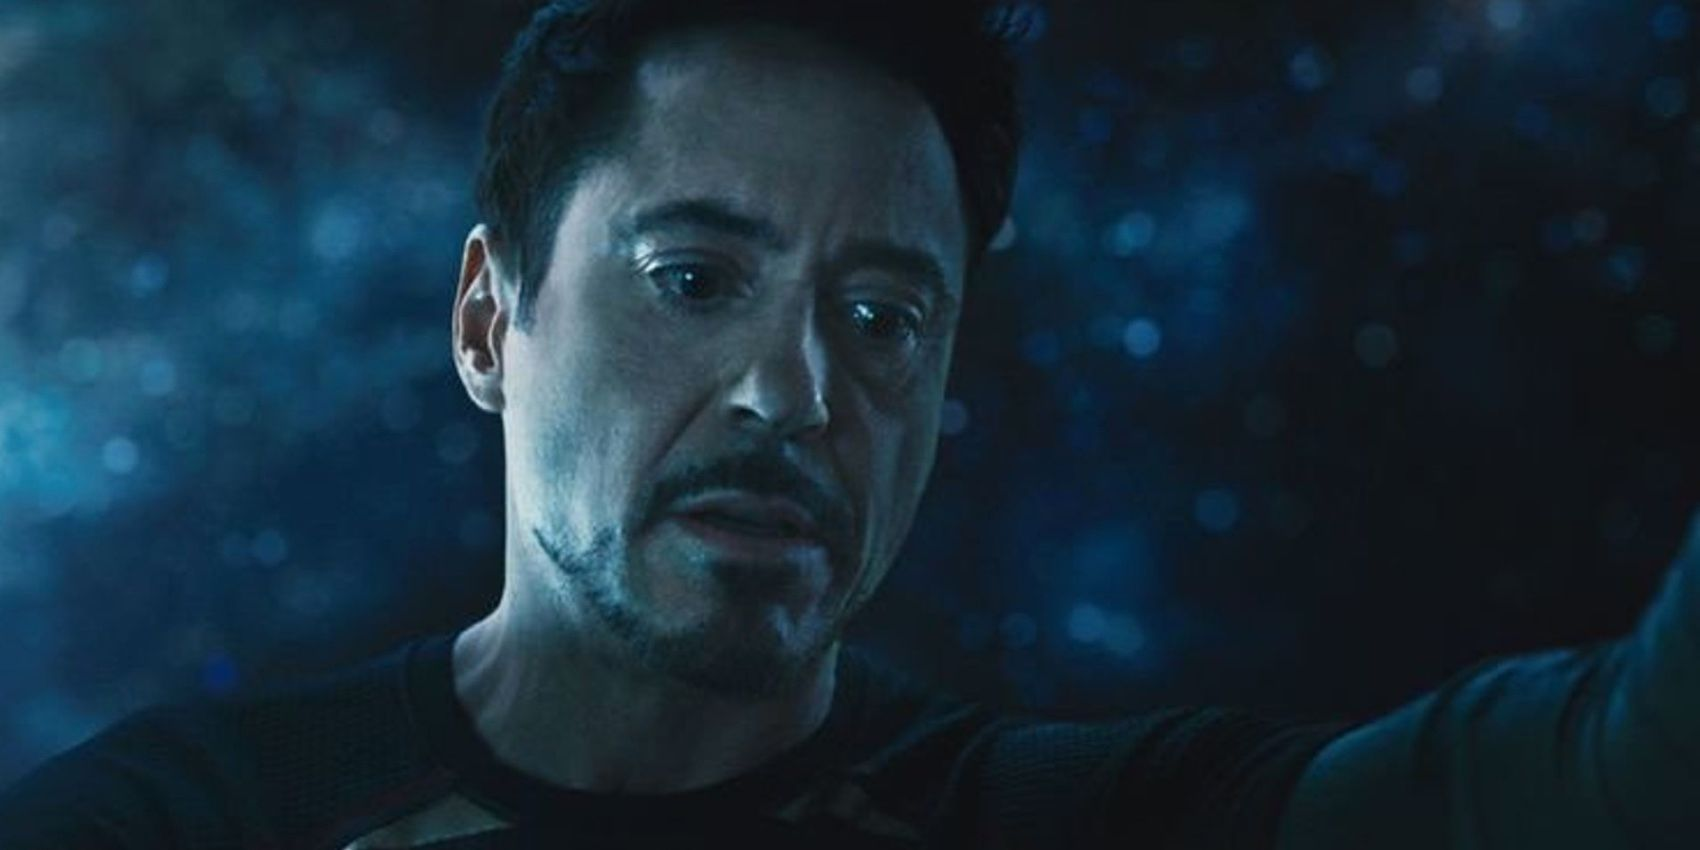 Tony's vision of the Future (Avengers: Age of Ultron), Tony Stark sees his worst fears in the vision of the future.